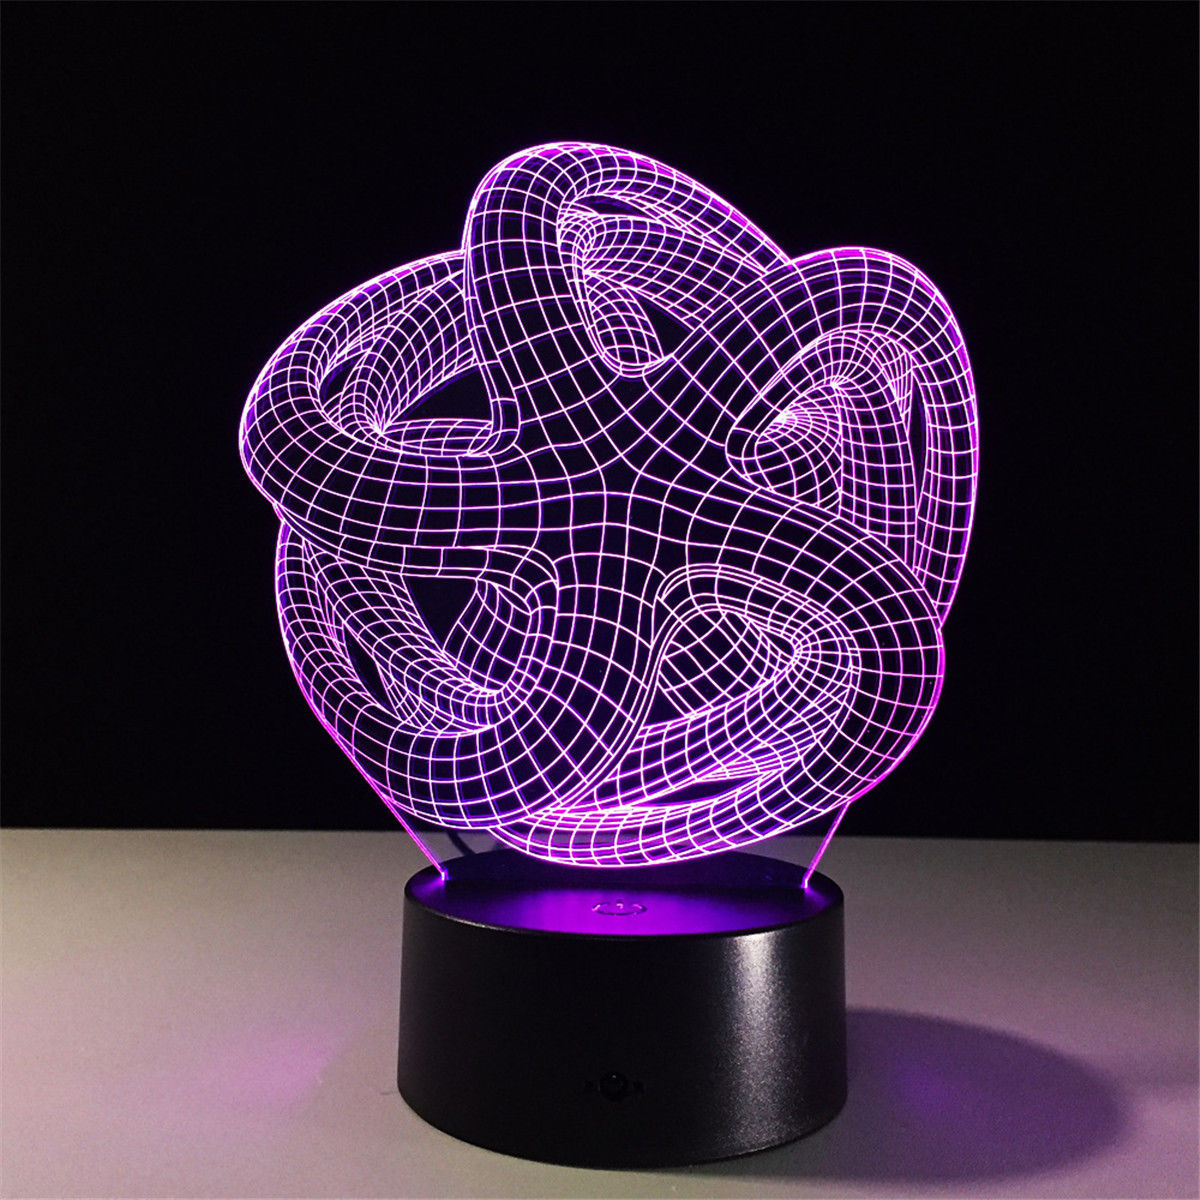 Abstract 3D Illusion Night Light Color Change Touch Switch Table Desk Lamp Gift Visual Led Touch Switch